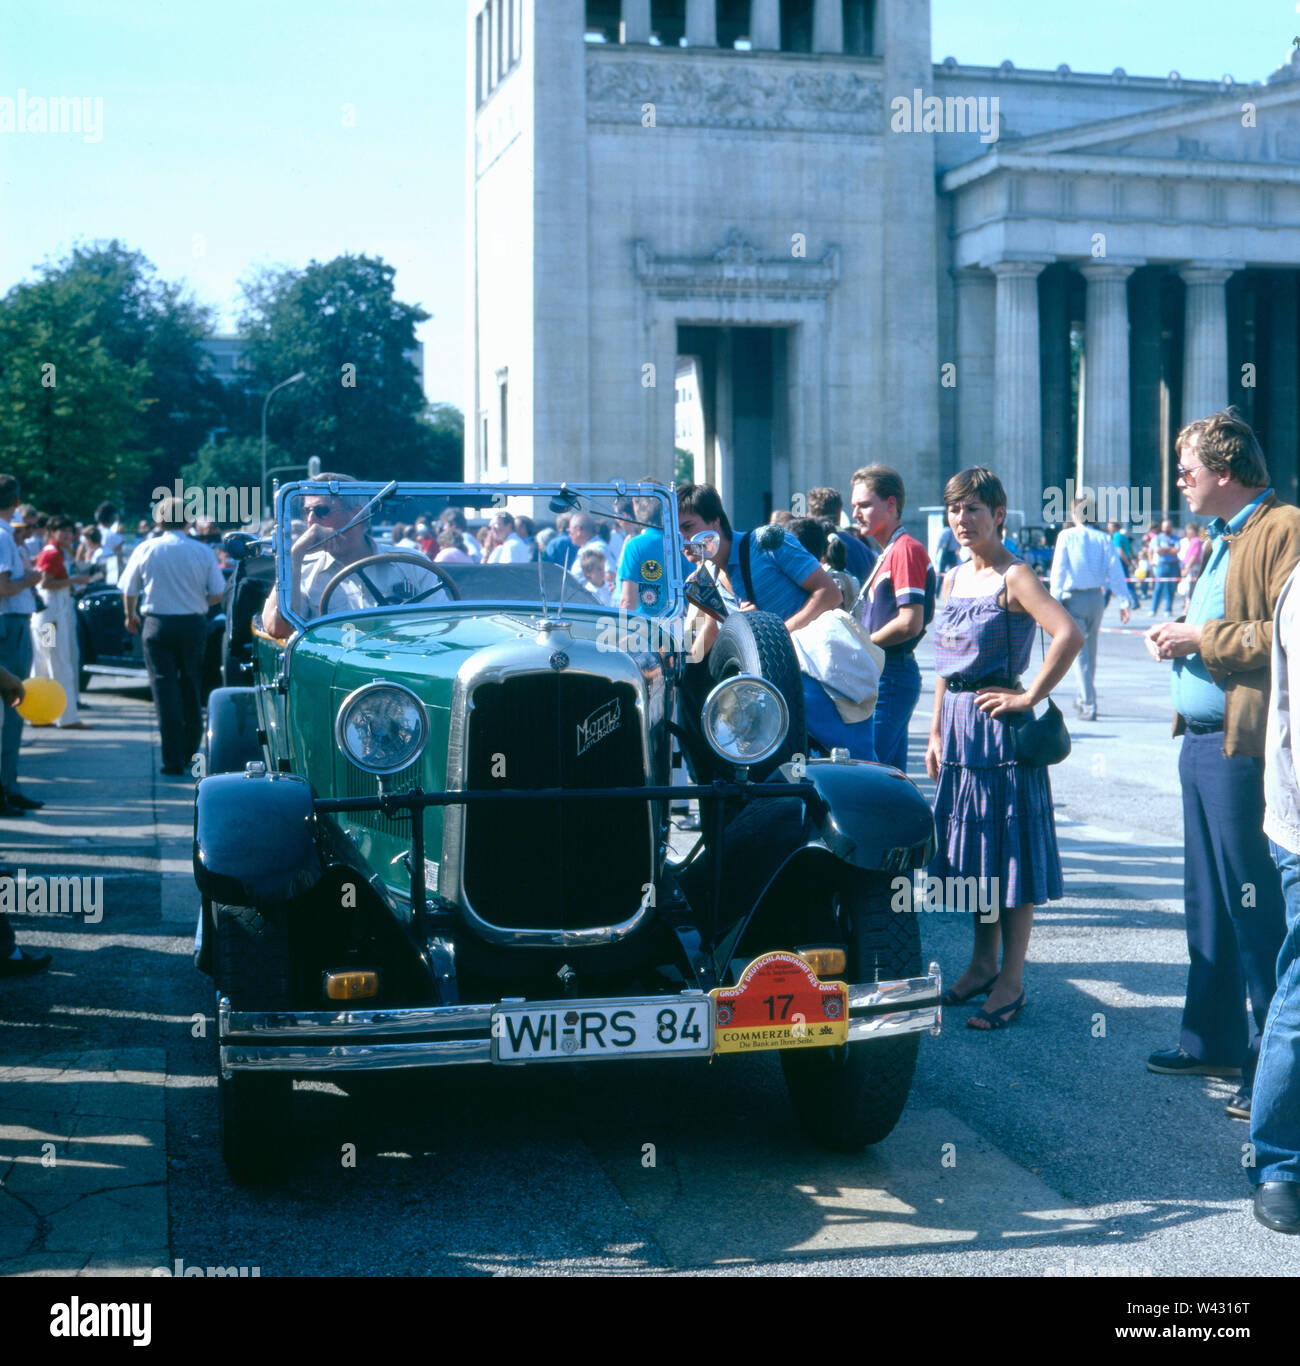 Ein Morris Bolley fährt durch München Ende der 1980er Jahre.  A Morris Bolley drives through Munich in the late 1980s. - Stock Image